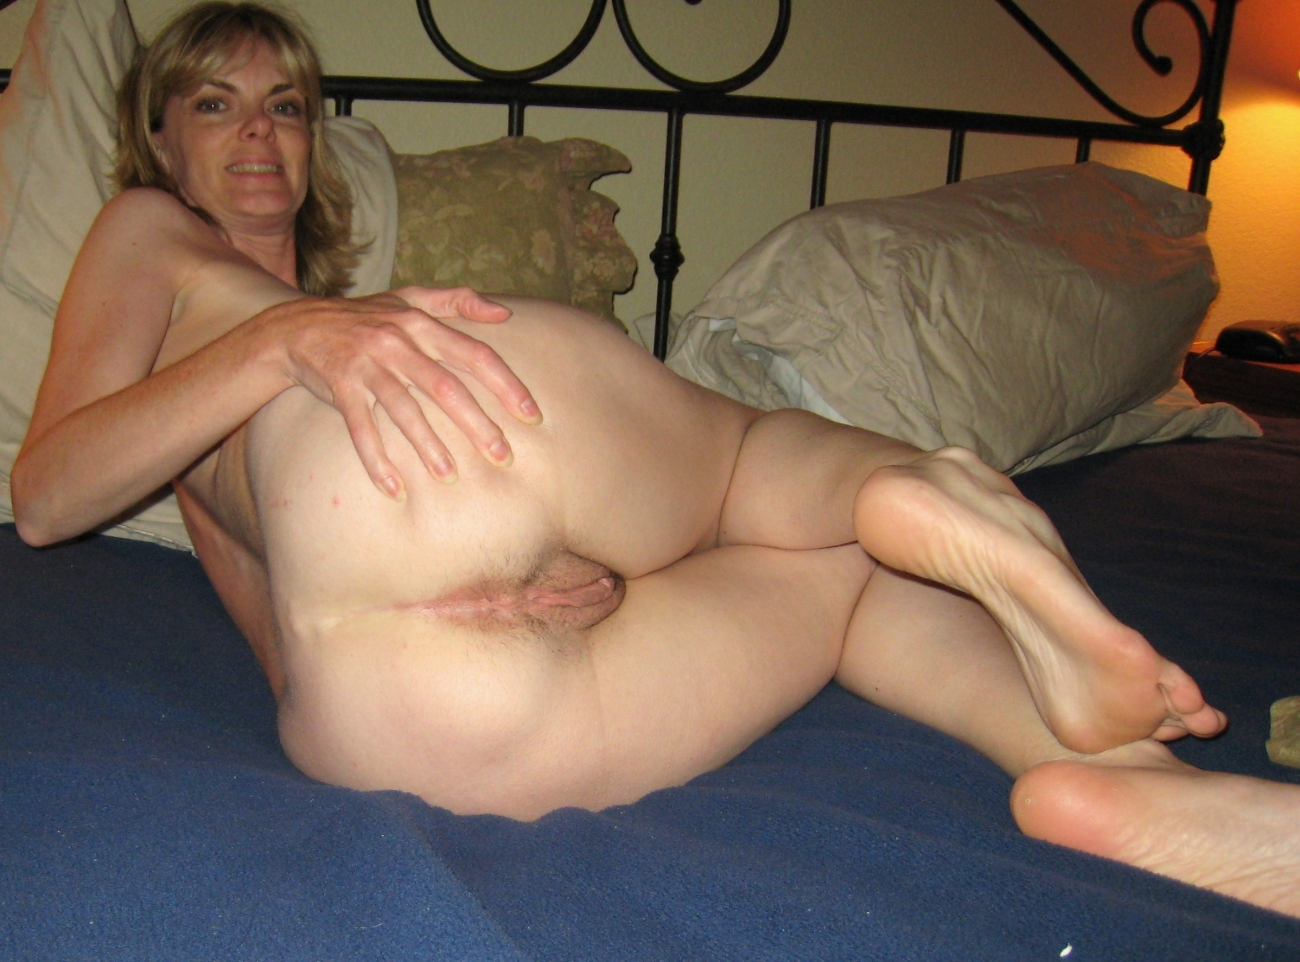 Hot Naked Moms Pics And Sexy Mature Mom Porn